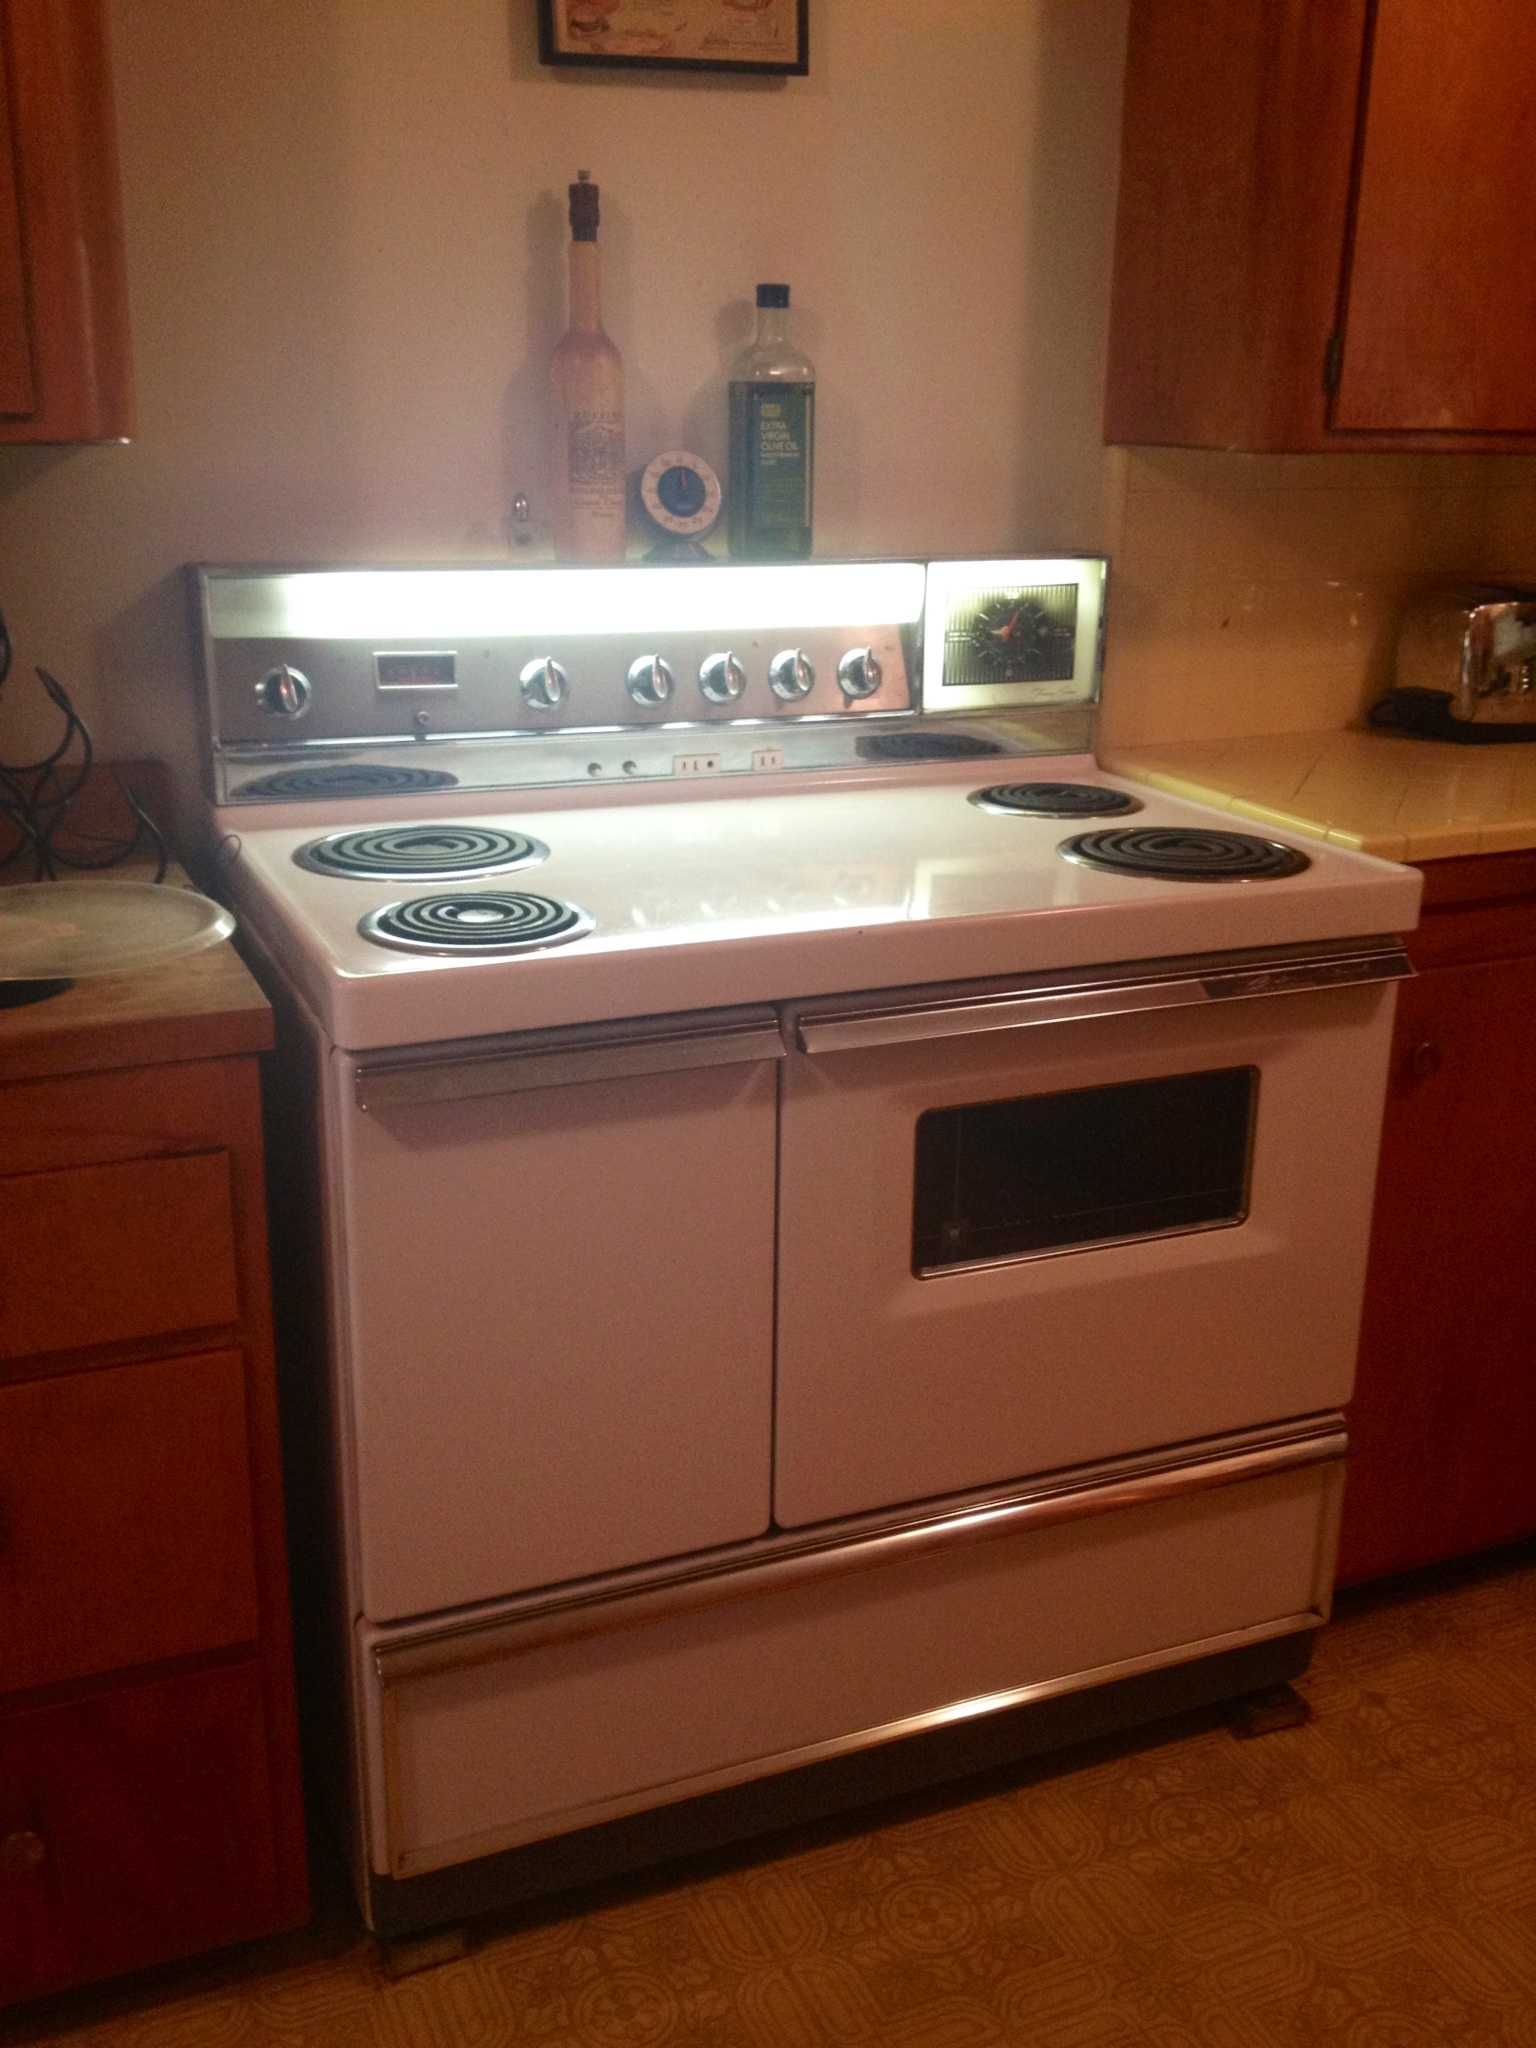 208 Pictures Of Vintage Stoves Refrigerators And Large Appliances Retro Renovation